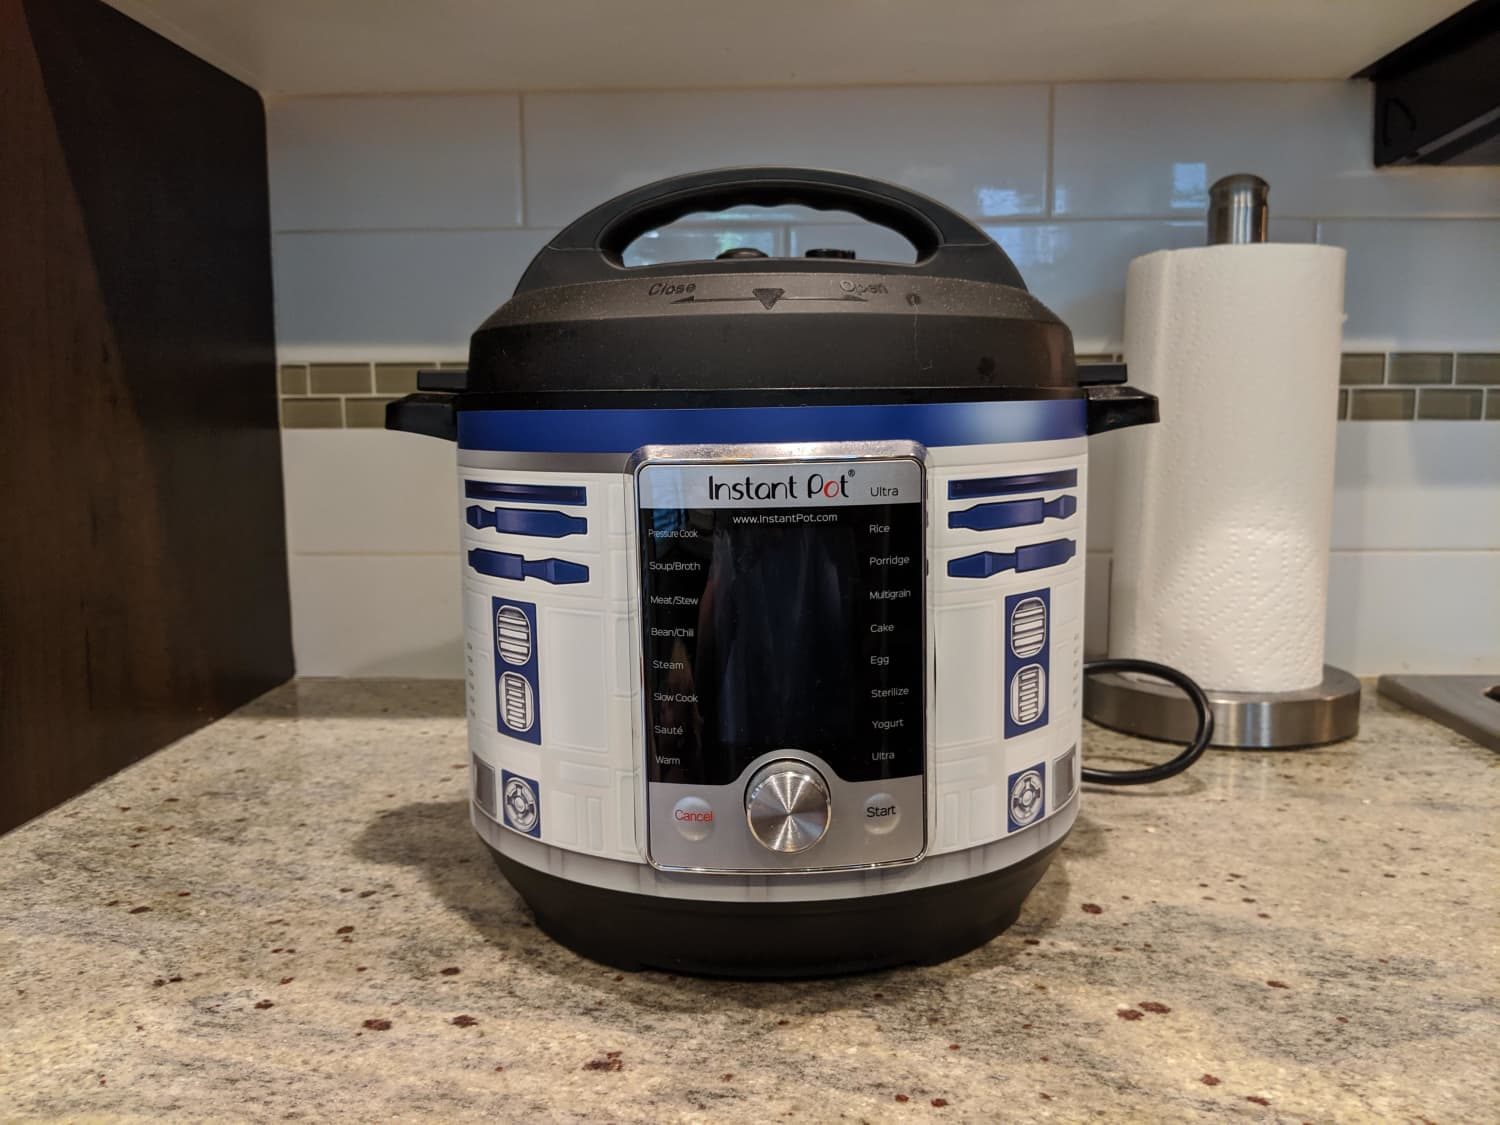 Genius Person Turns Their Instant Pot into R2D2 from Star Wars